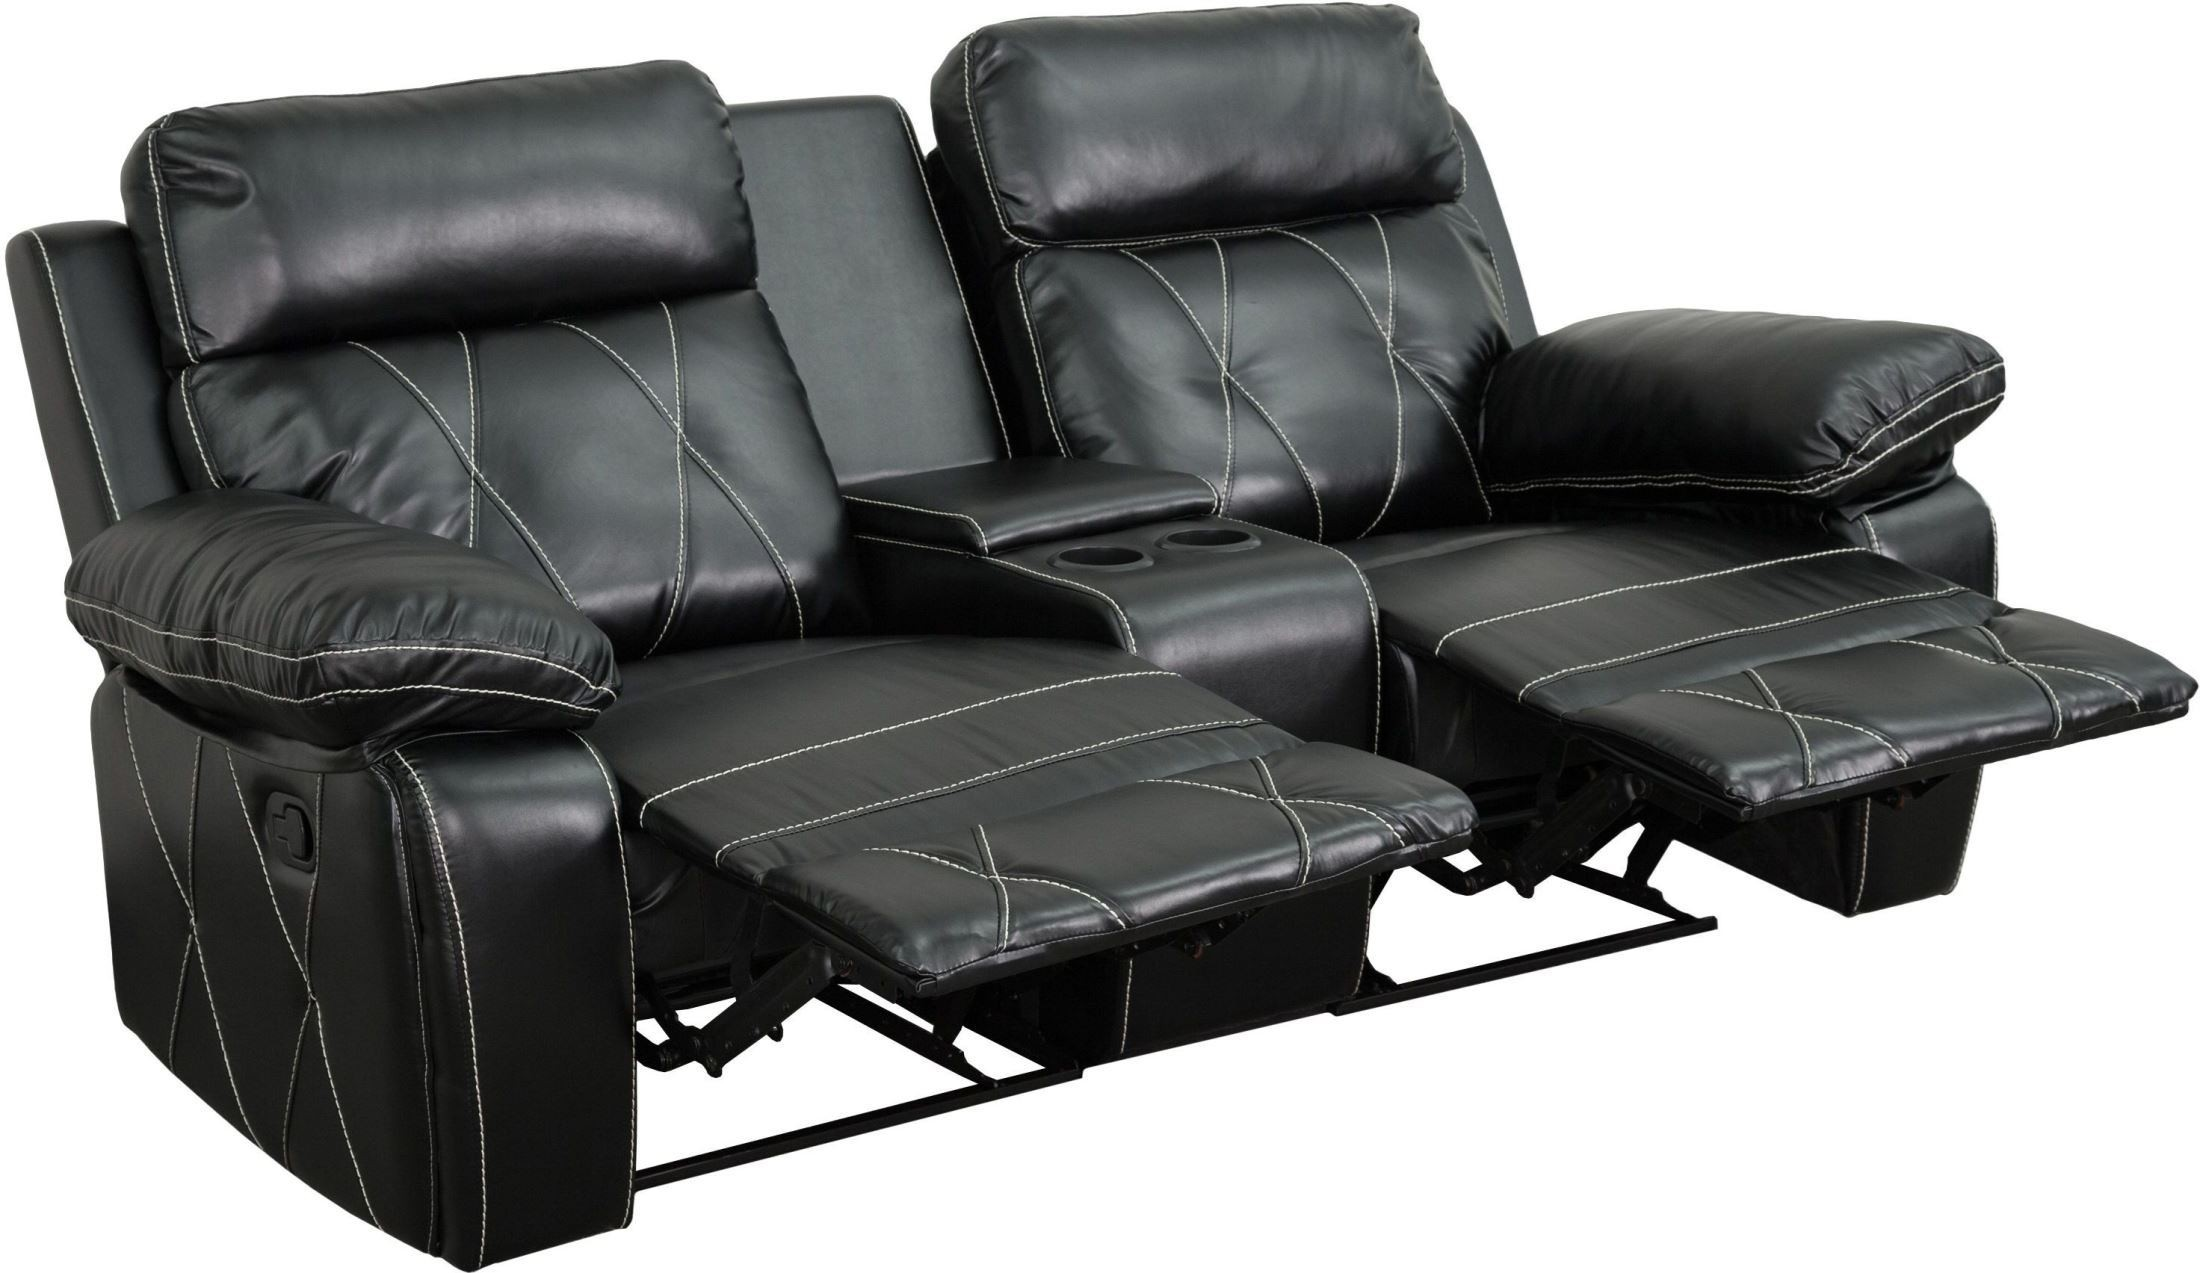 theater recliner chairs high chair that turns into a reel comfort series 2 seat reclining black leather